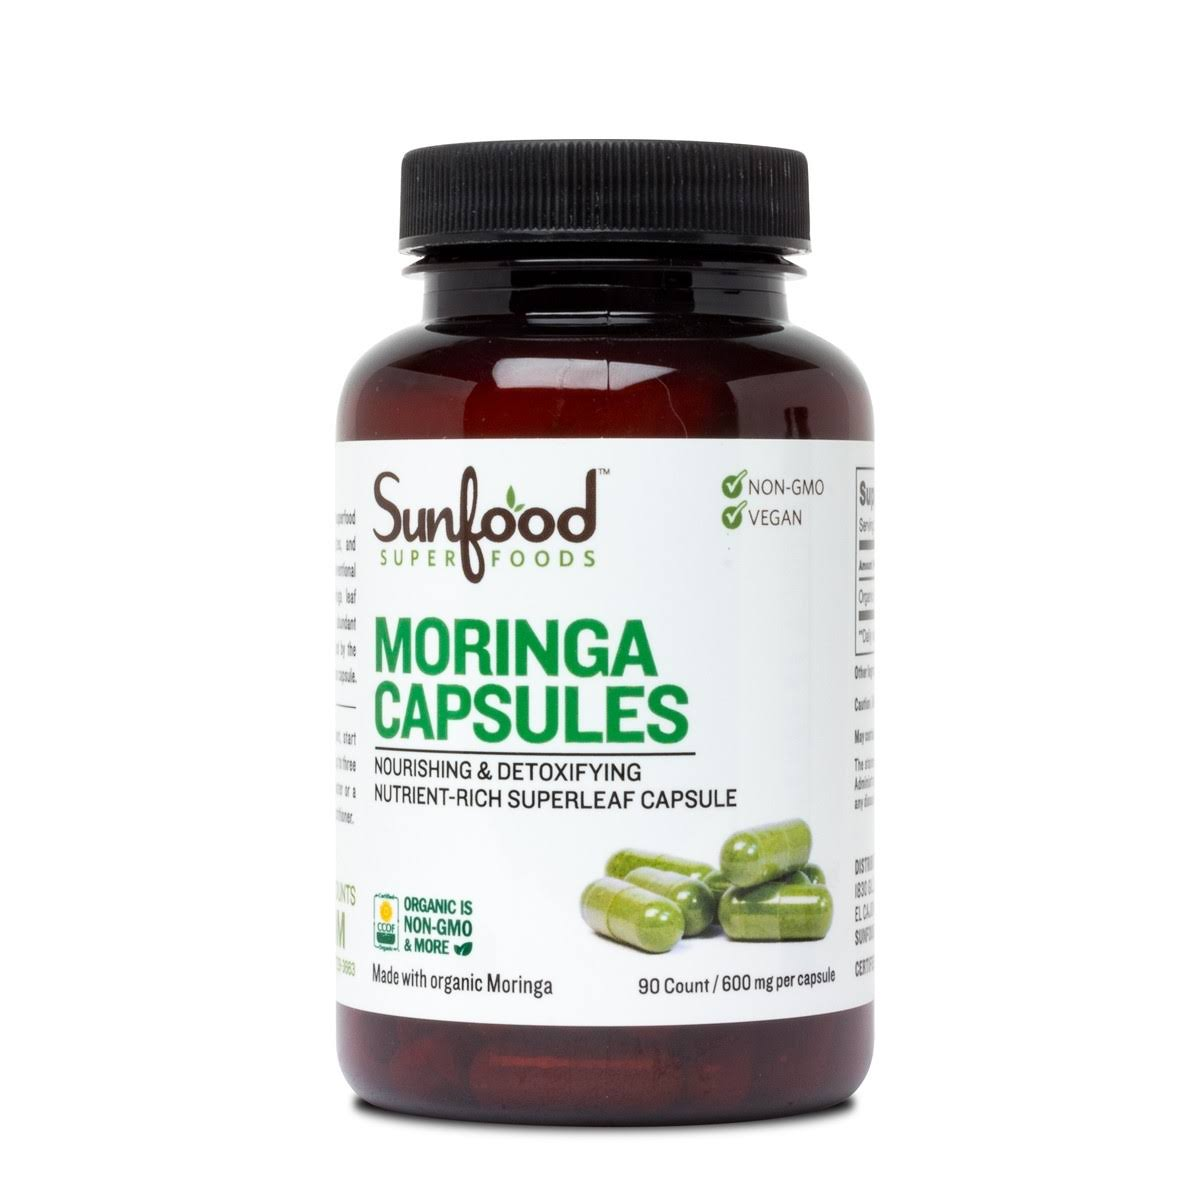 Sunfood Superfoods Moringa Capsules 600 mg. 90 Count